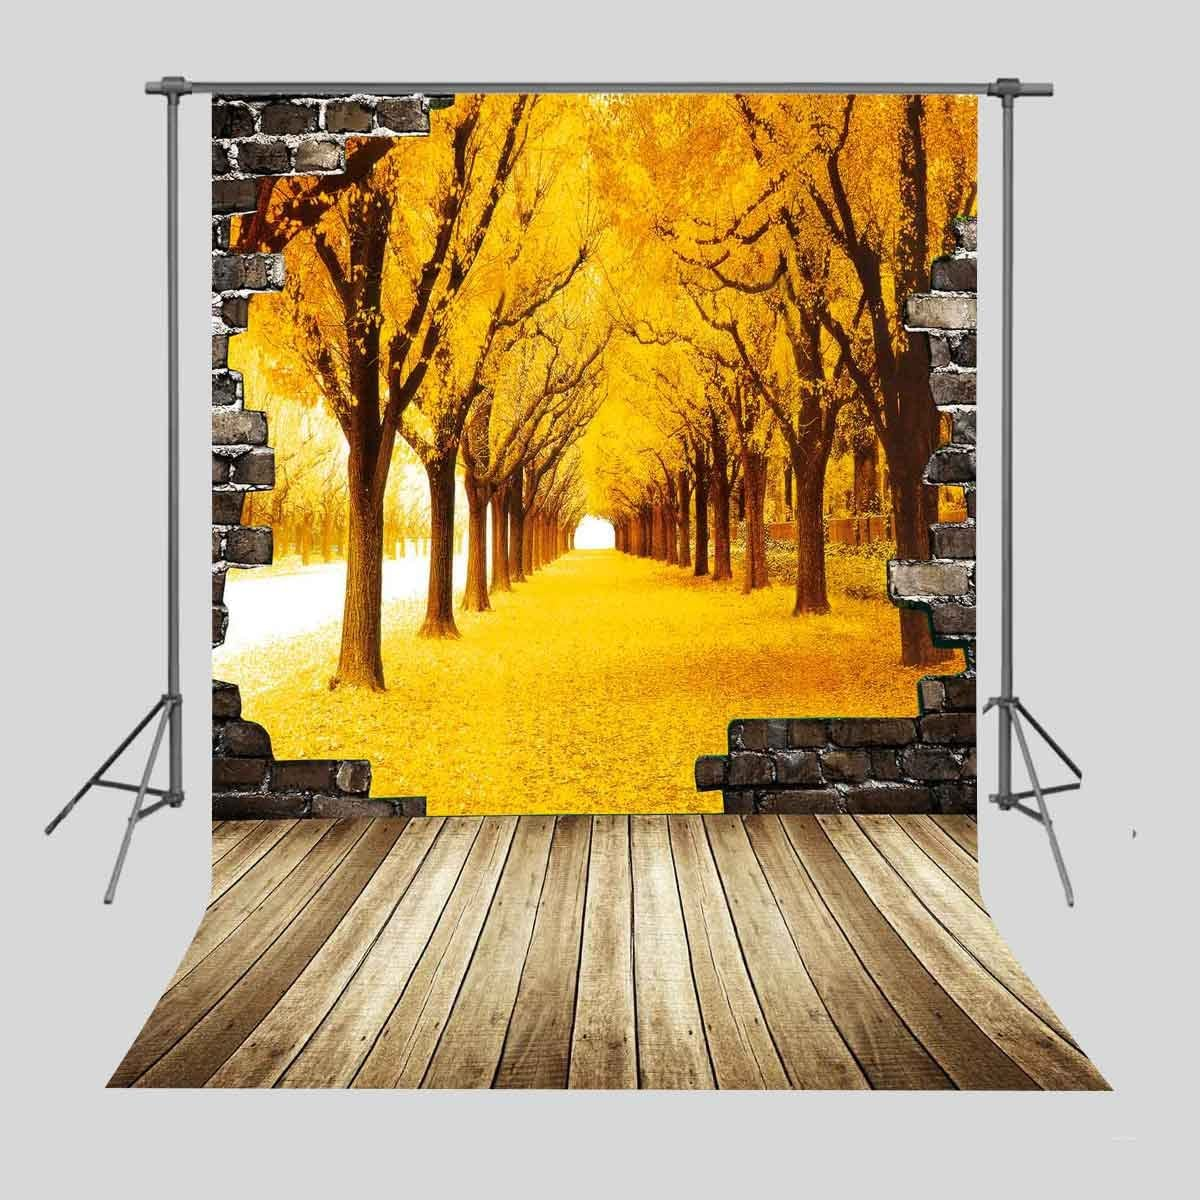 FUERMOR Background 5x7ft Golden Trees Leaves Wood Floor Photography Backdrop Studio Photo Props Wall Mural LXFU075